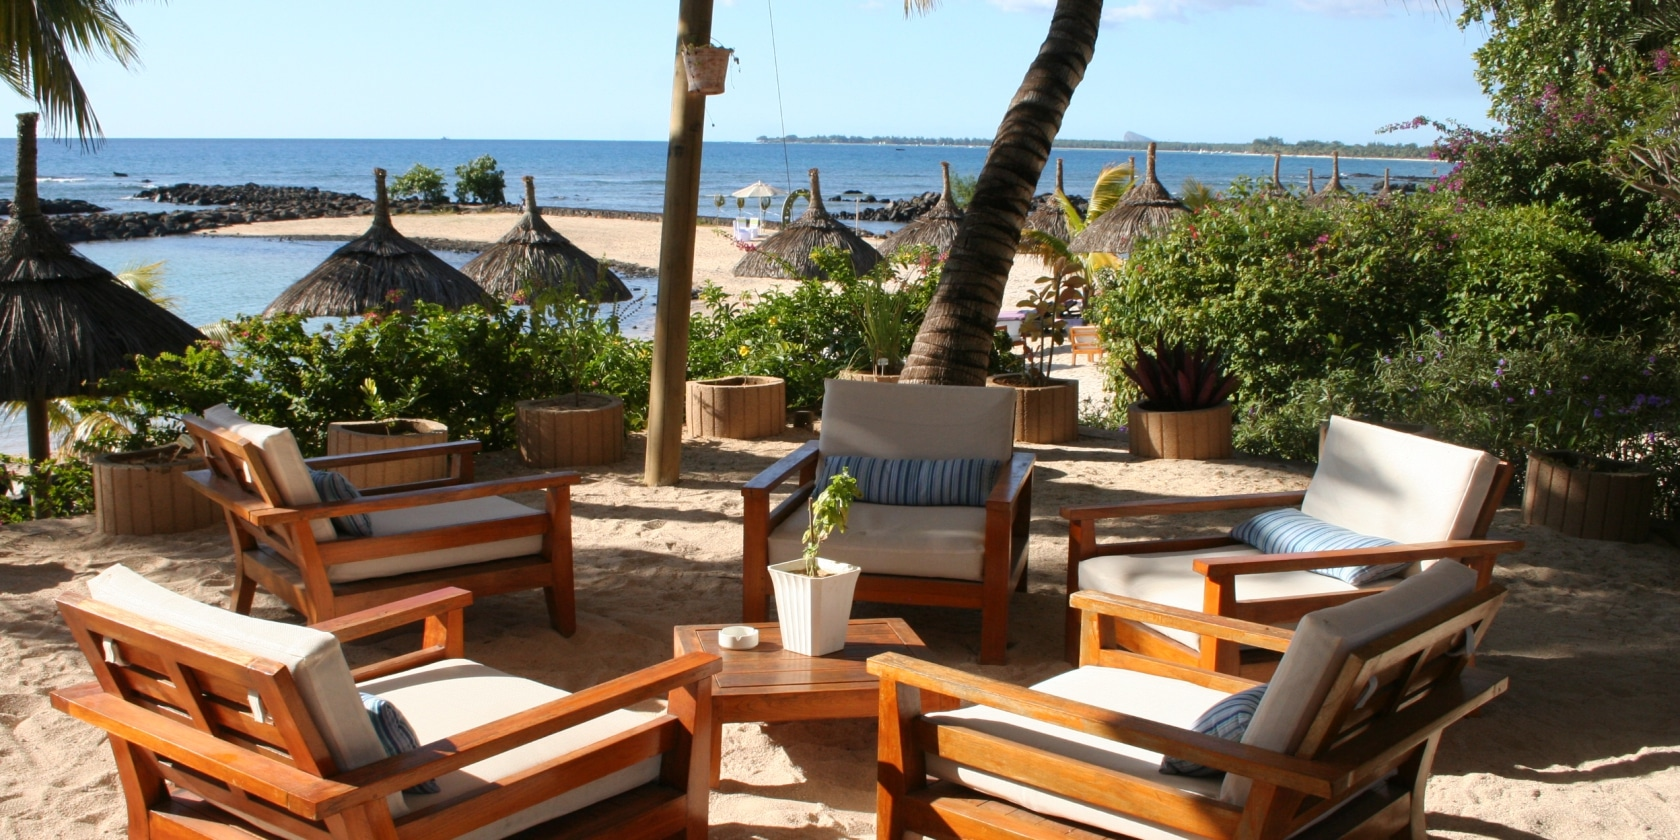 Point aux Biches - Lounge aan het strand